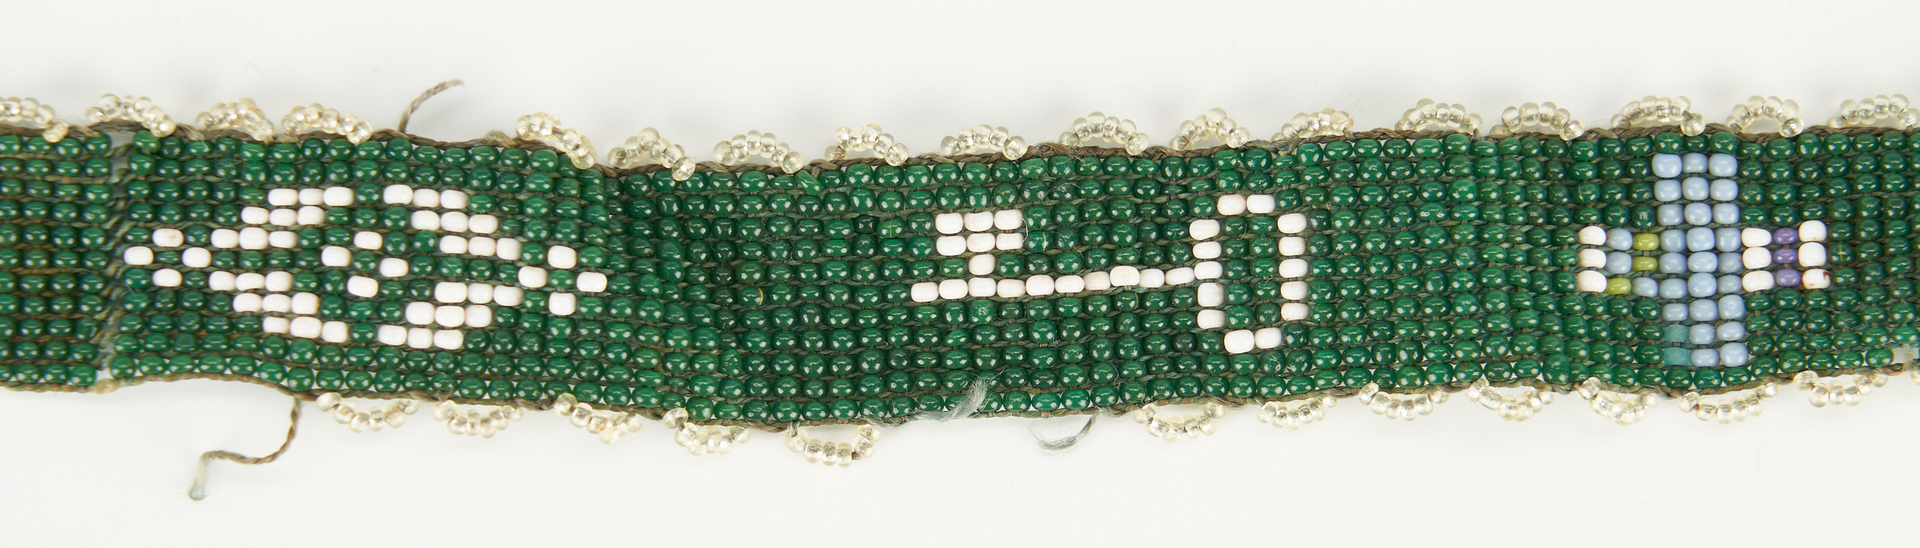 Lot 665: An 1834 Beaded Watch Chain with Provenance